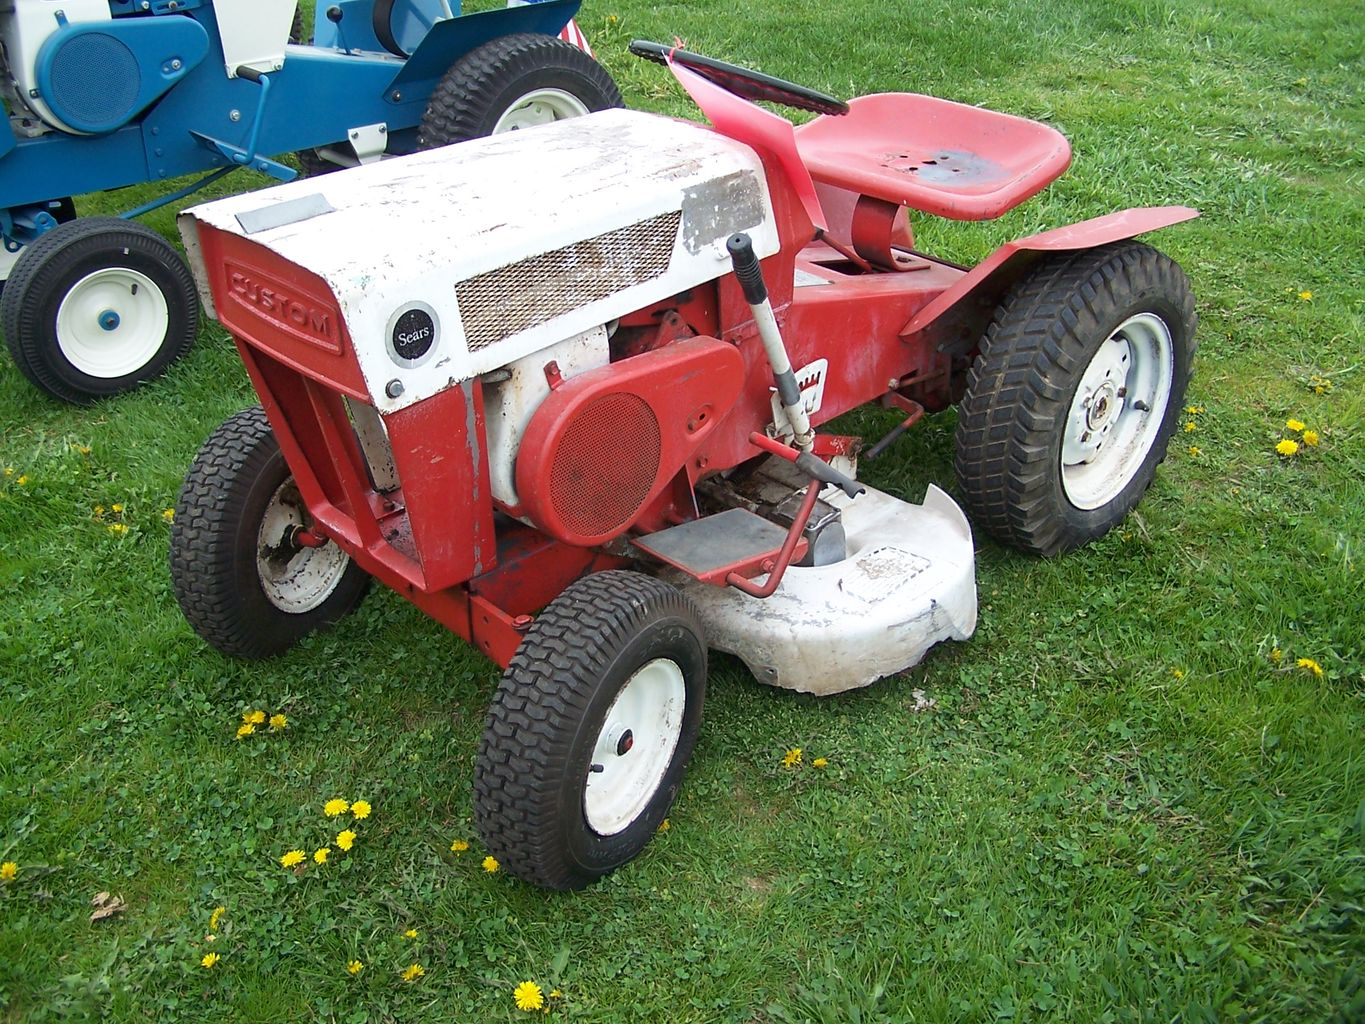 Sears Craftsman Troubleshooting Sears Garden Tractor